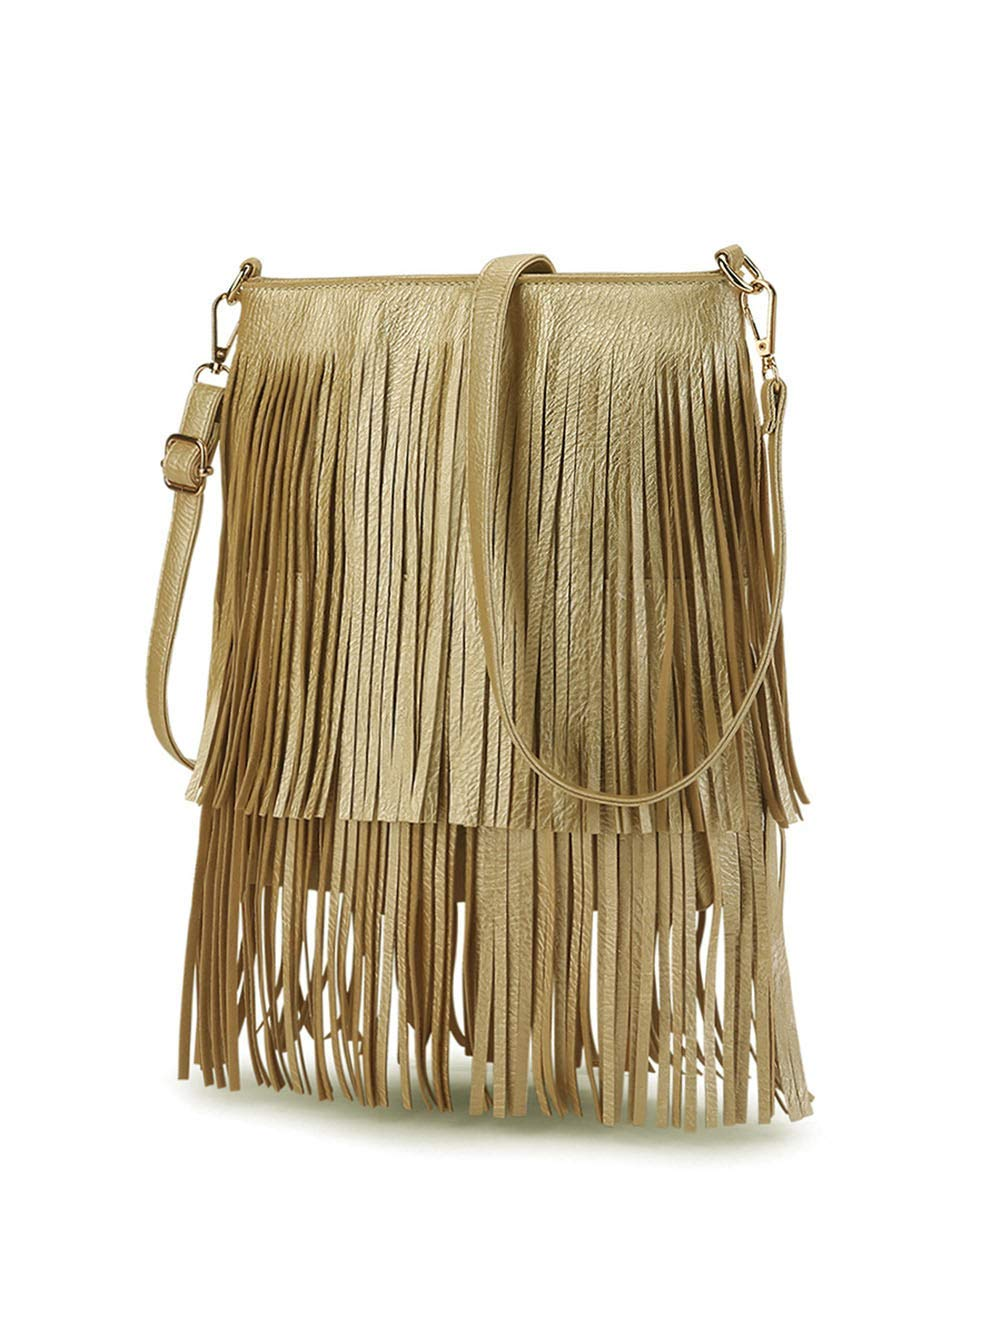 ZGYQGOO Fringed PU Leather Tote Shoulder Bag Casual Messenger Bag Simple Women's Multifunction Travel Dating Women's Bag by ZGYQGOO